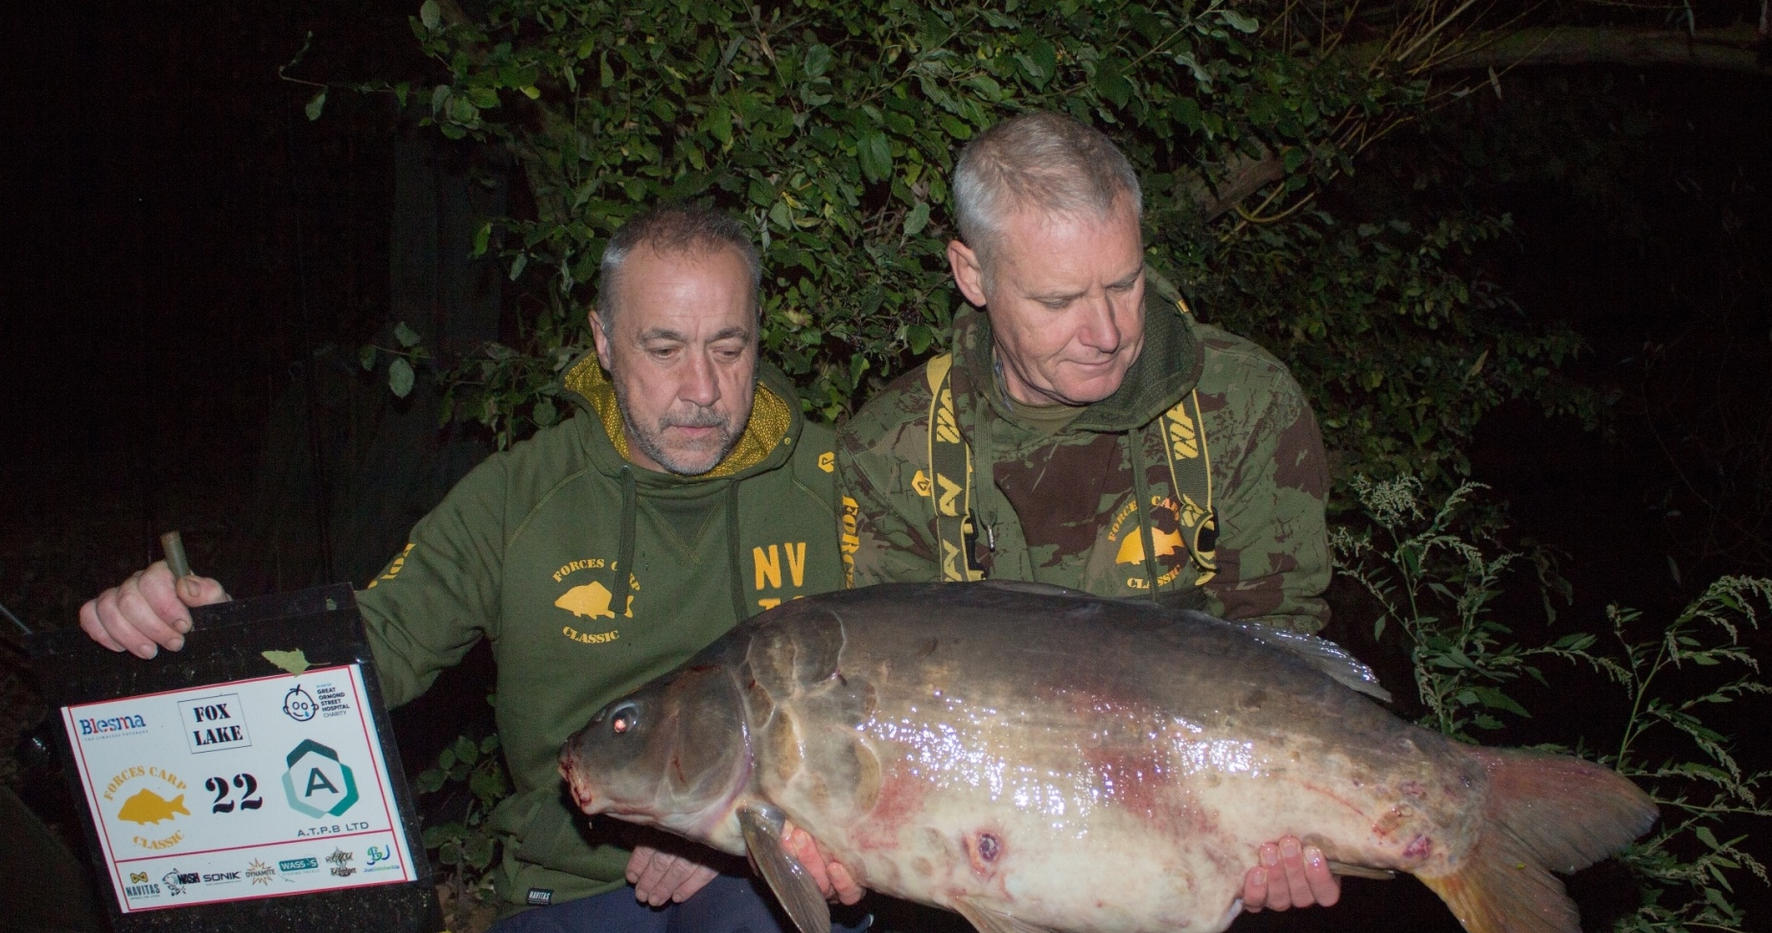 19. Another mirror for Peg 22